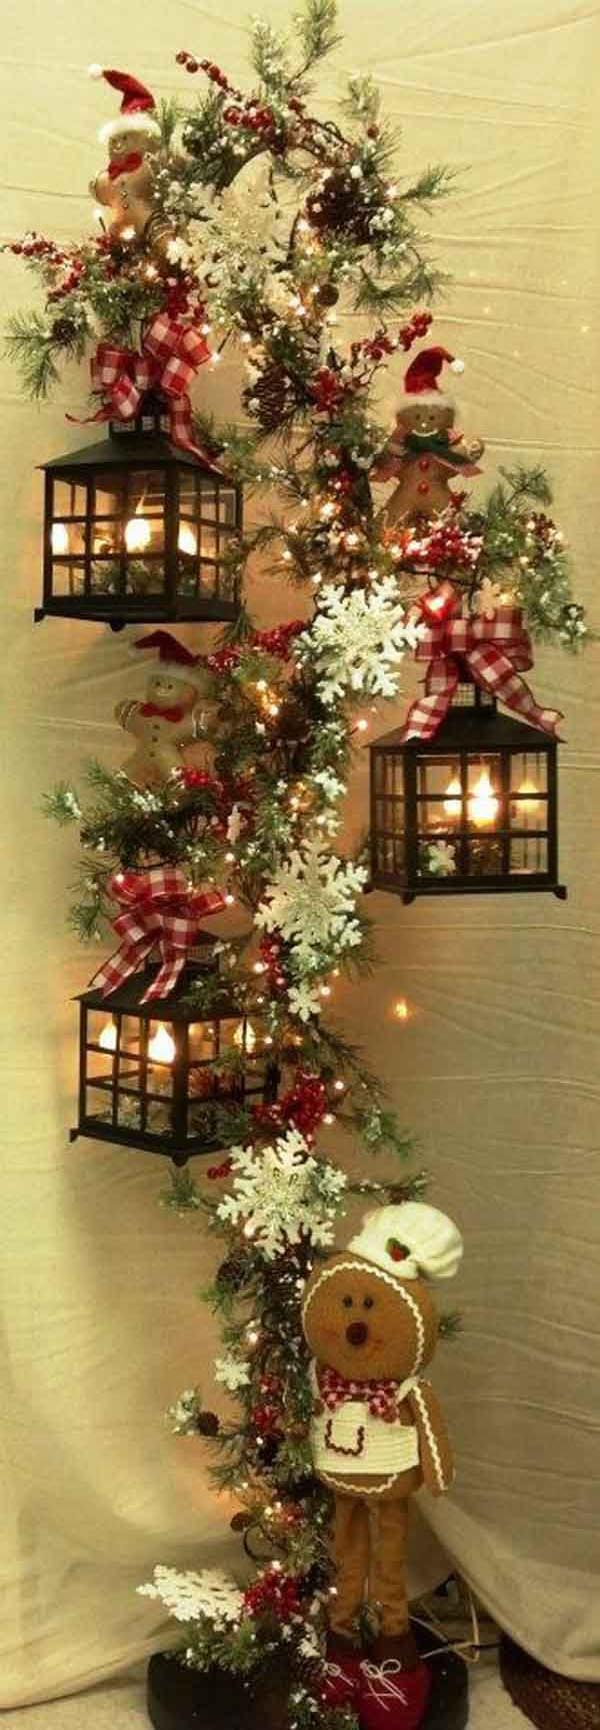 Most popular christmas pins in pinterest christmas - Ideas de adornos de navidad ...